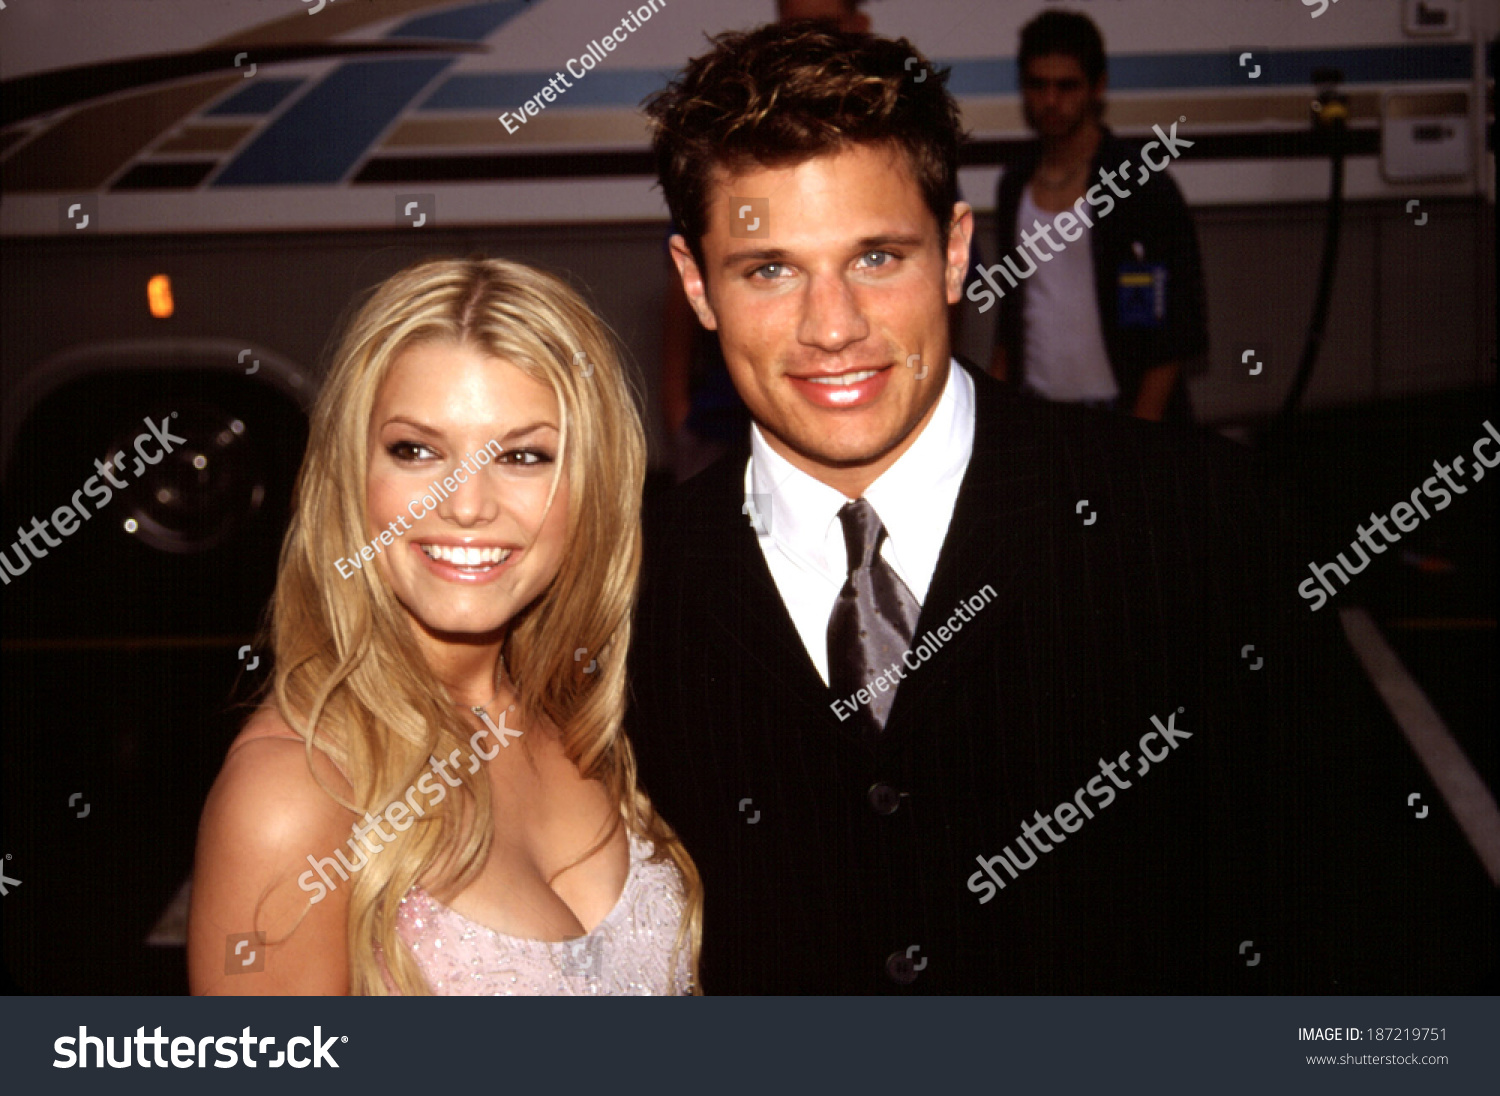 Download jessica simpson and nick lachey sex